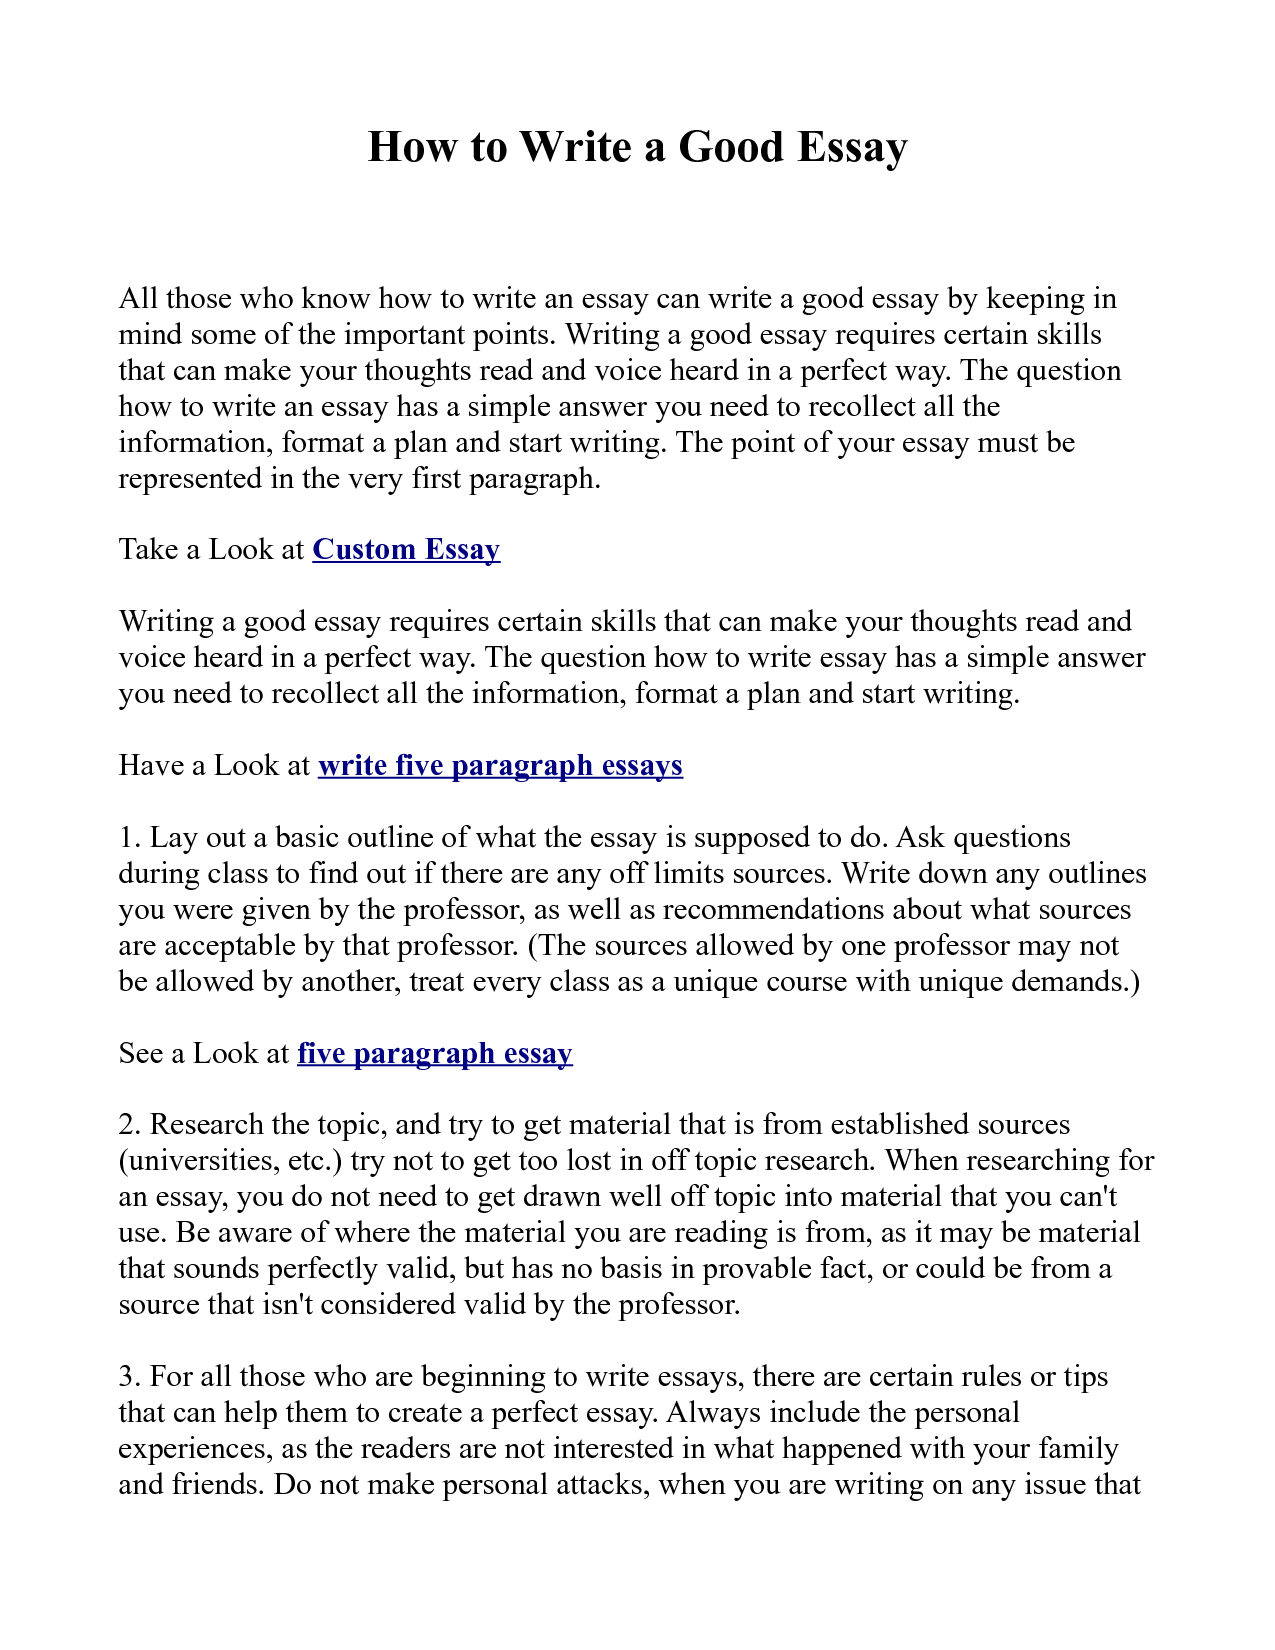 007 Ex1id5s6cl Essay Example How To Start Amazing An Analysis On A Book Ways With Question About Two Books Full